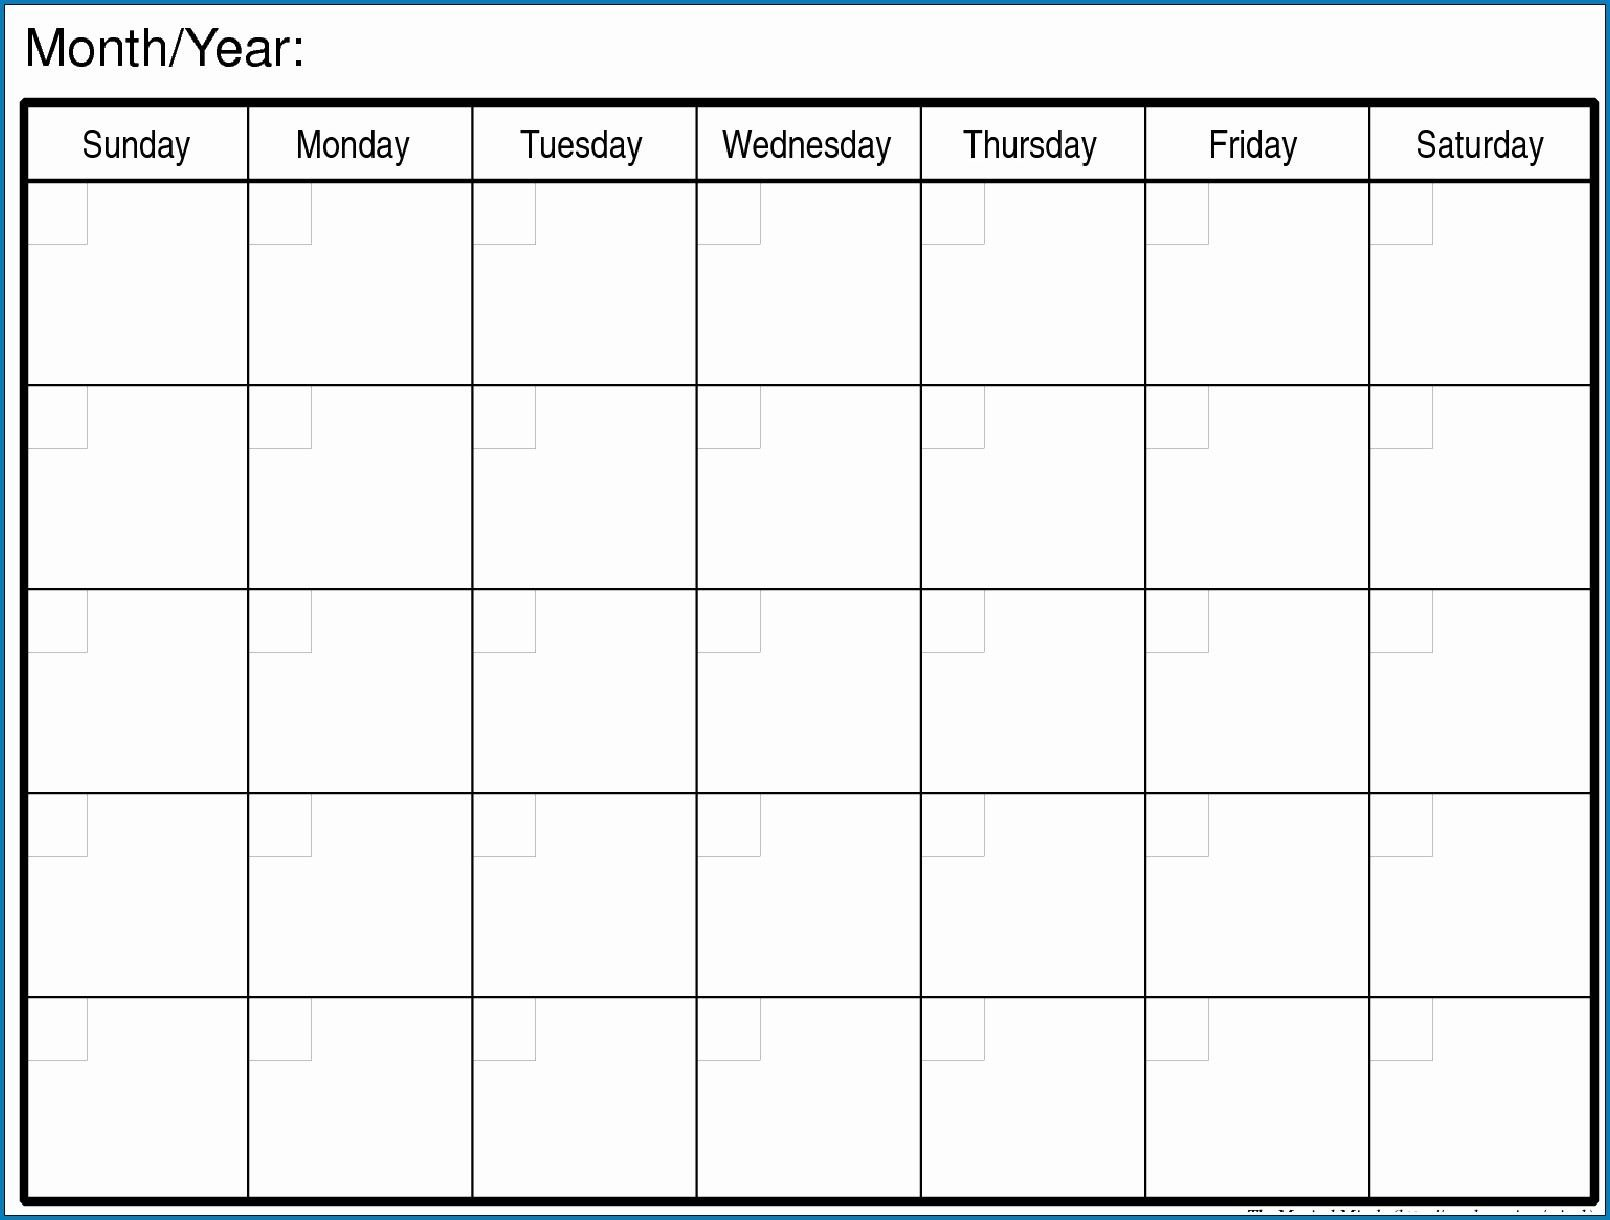 How To Printable Monday Through Friday Monthly Calendar Mon - Friday Monthly Calendar Template